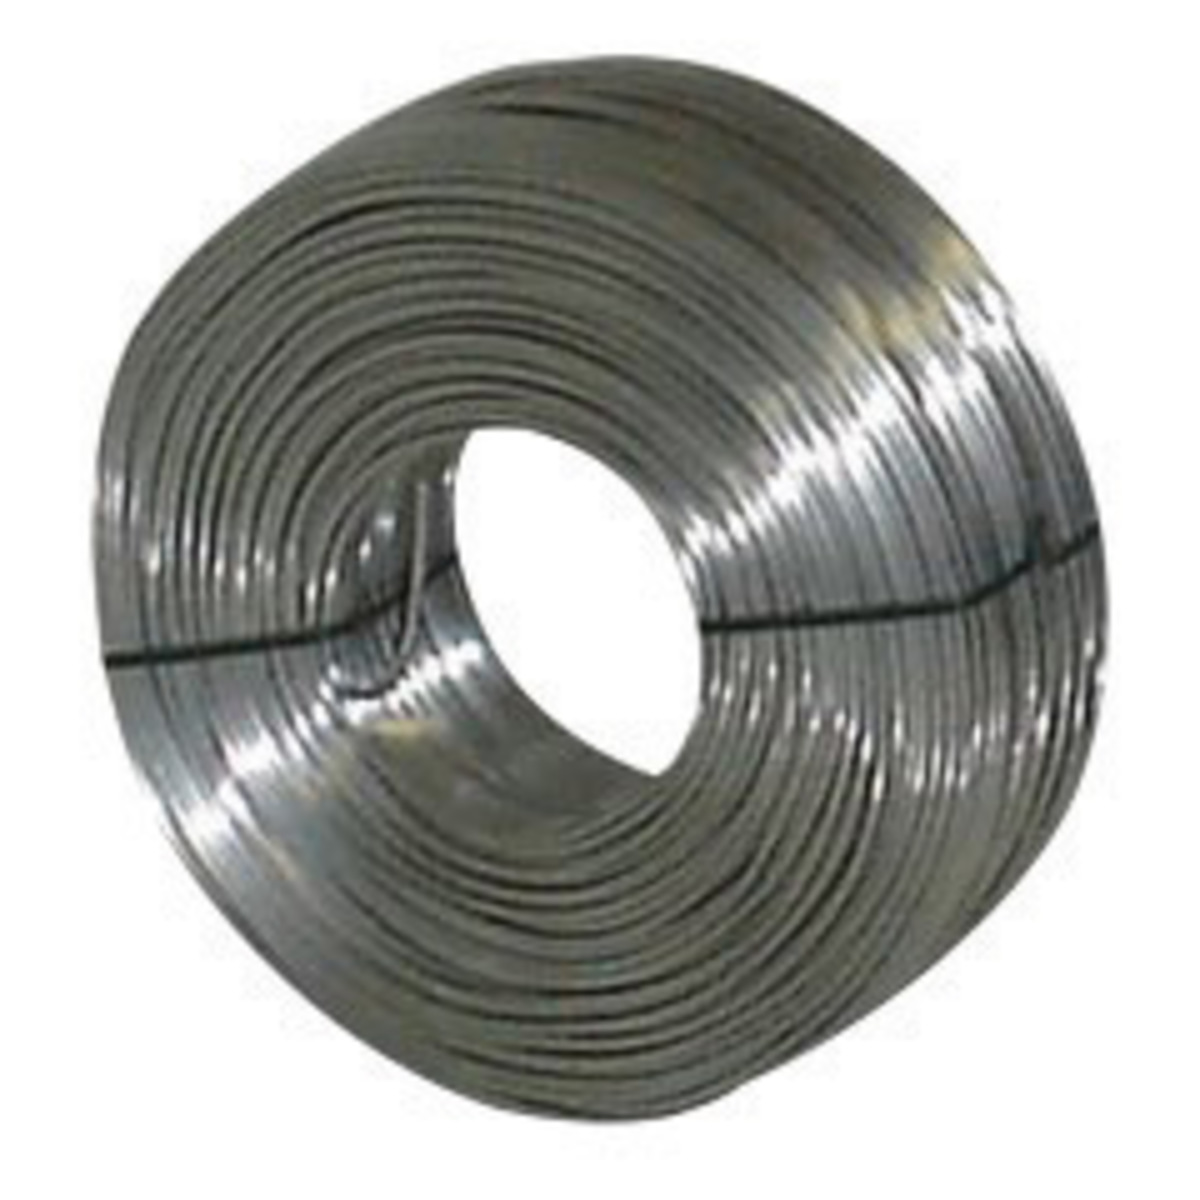 Airgas - I51132-18-SS - Ideal Reel 18 Gauge Stainless Steel Tie Wire